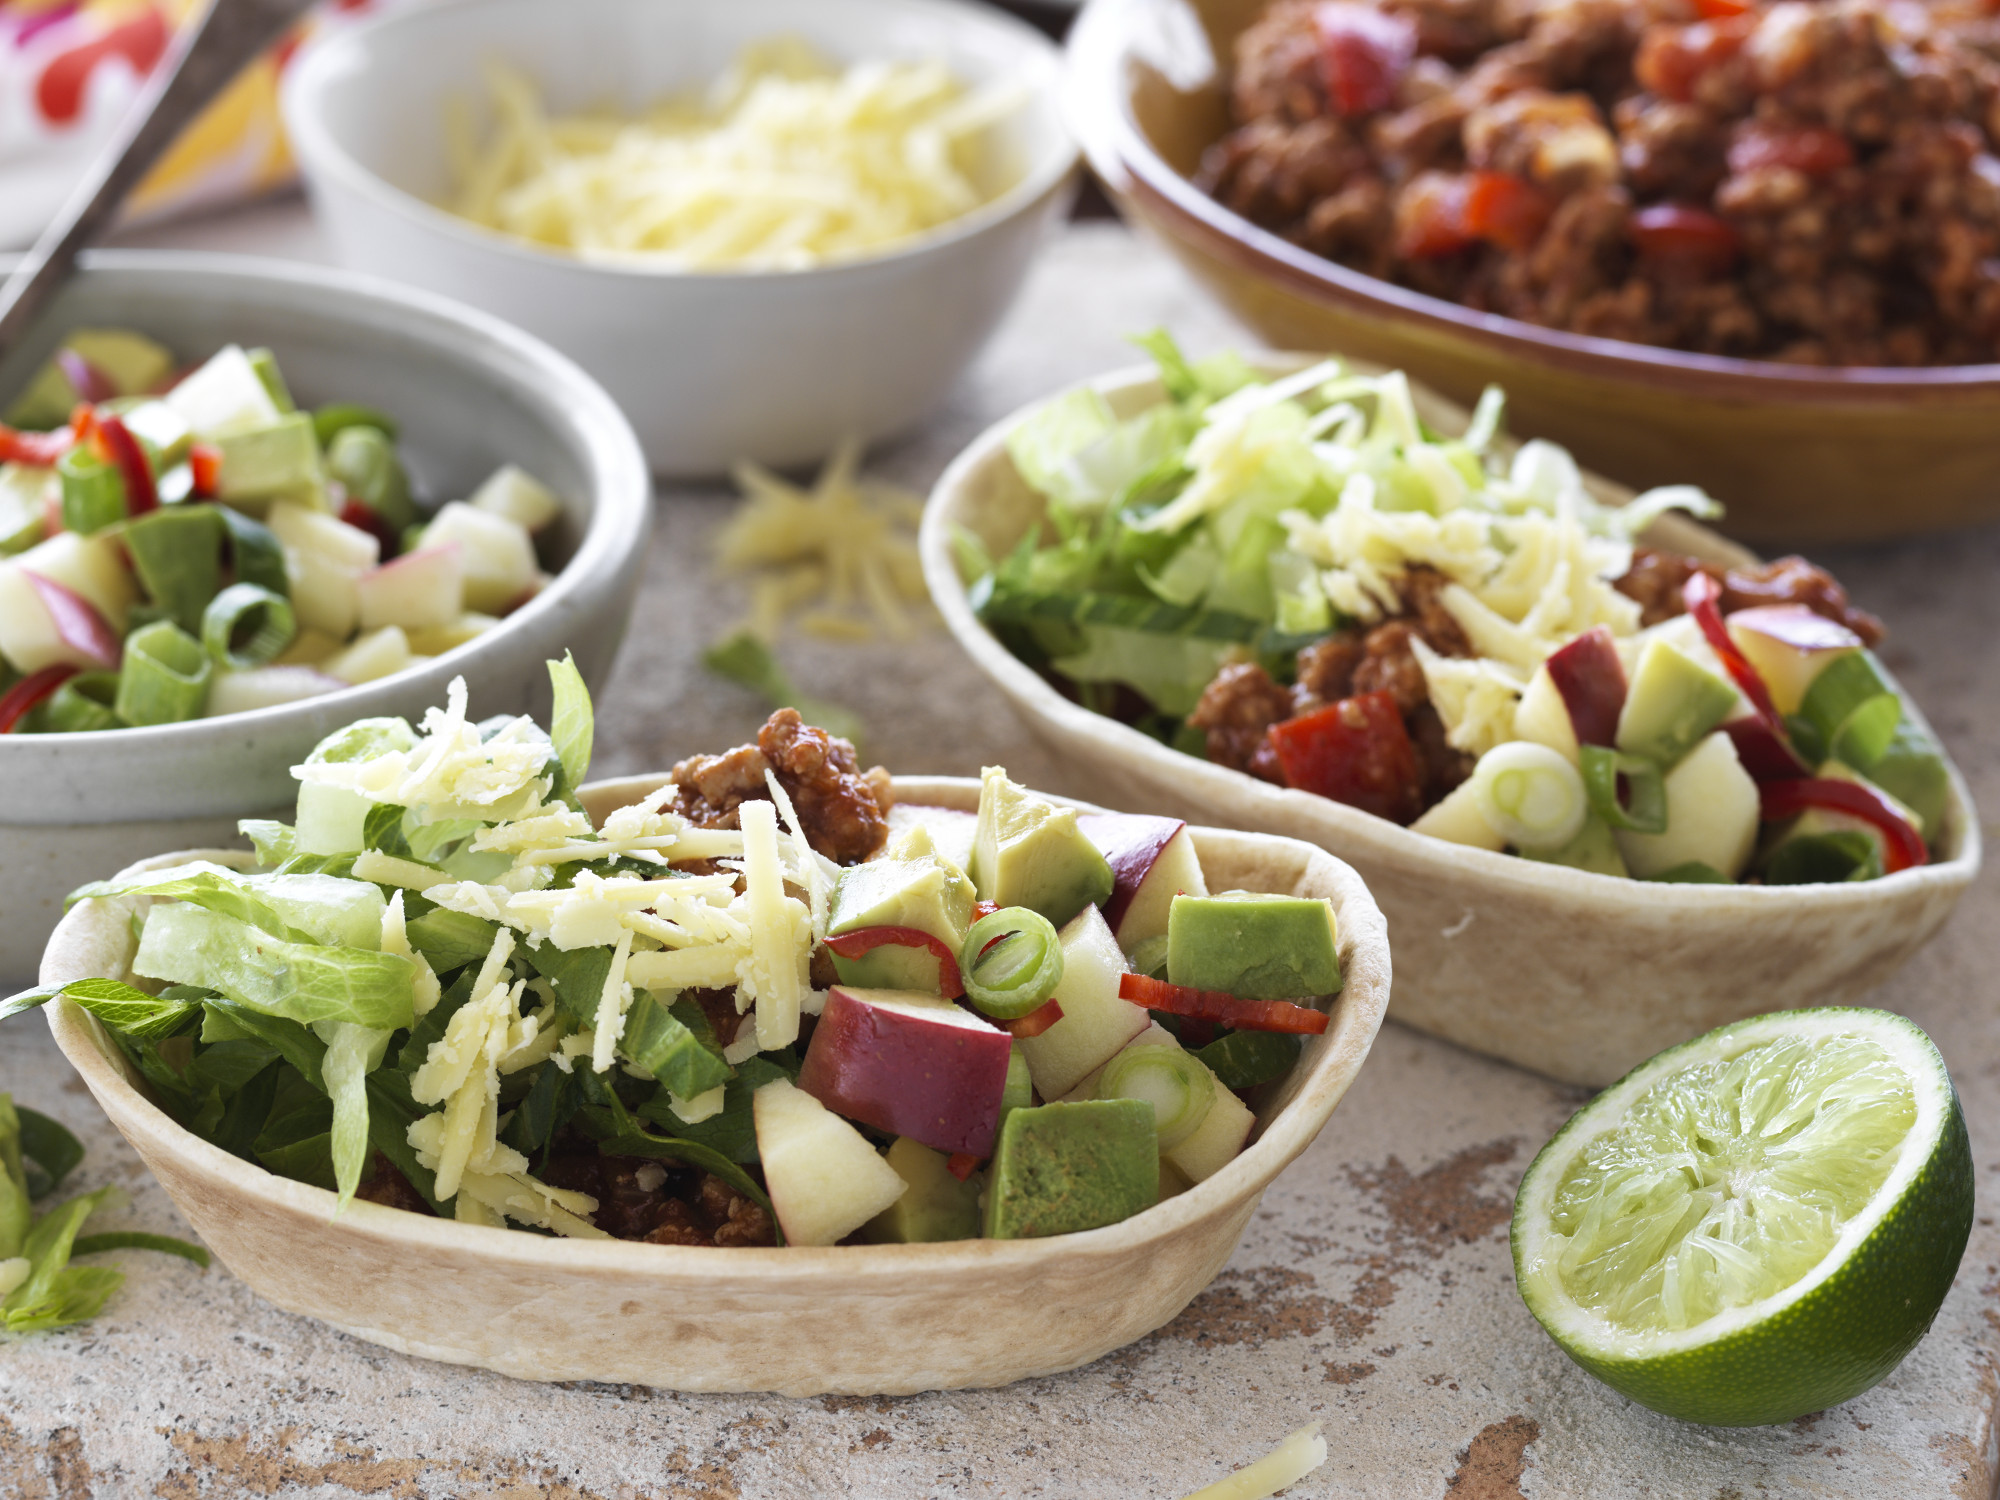 Pork and Chipotle Tacos